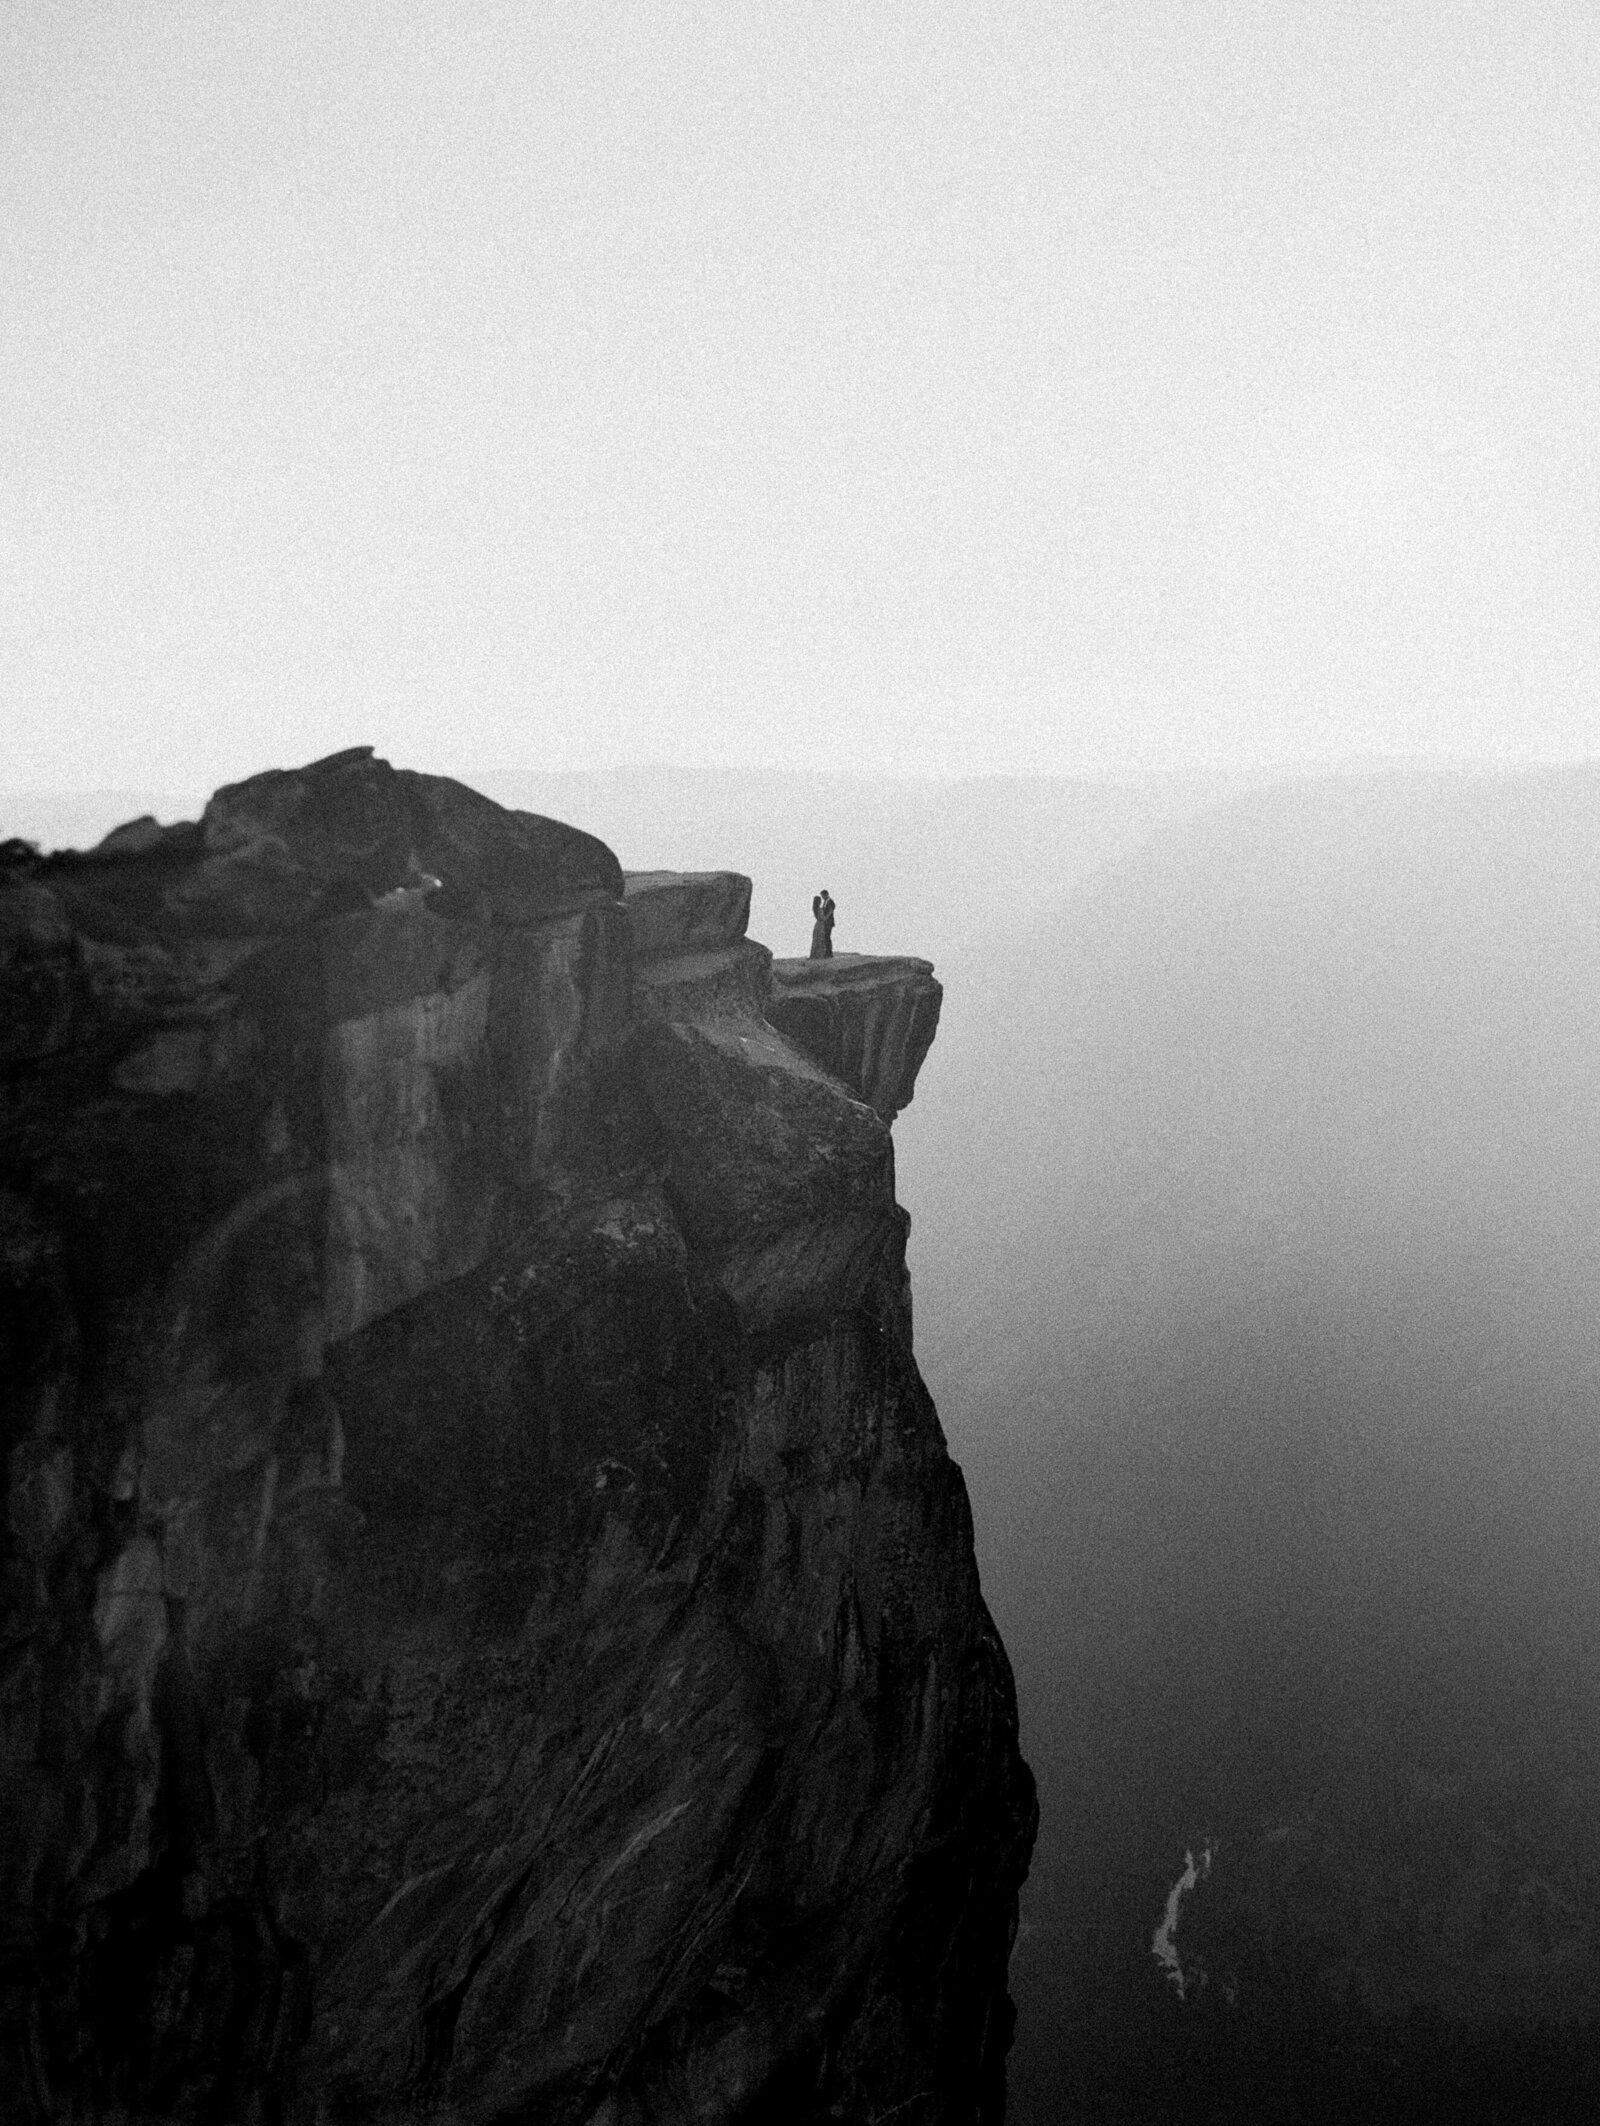 Elopement on Taft Point in Yosemite